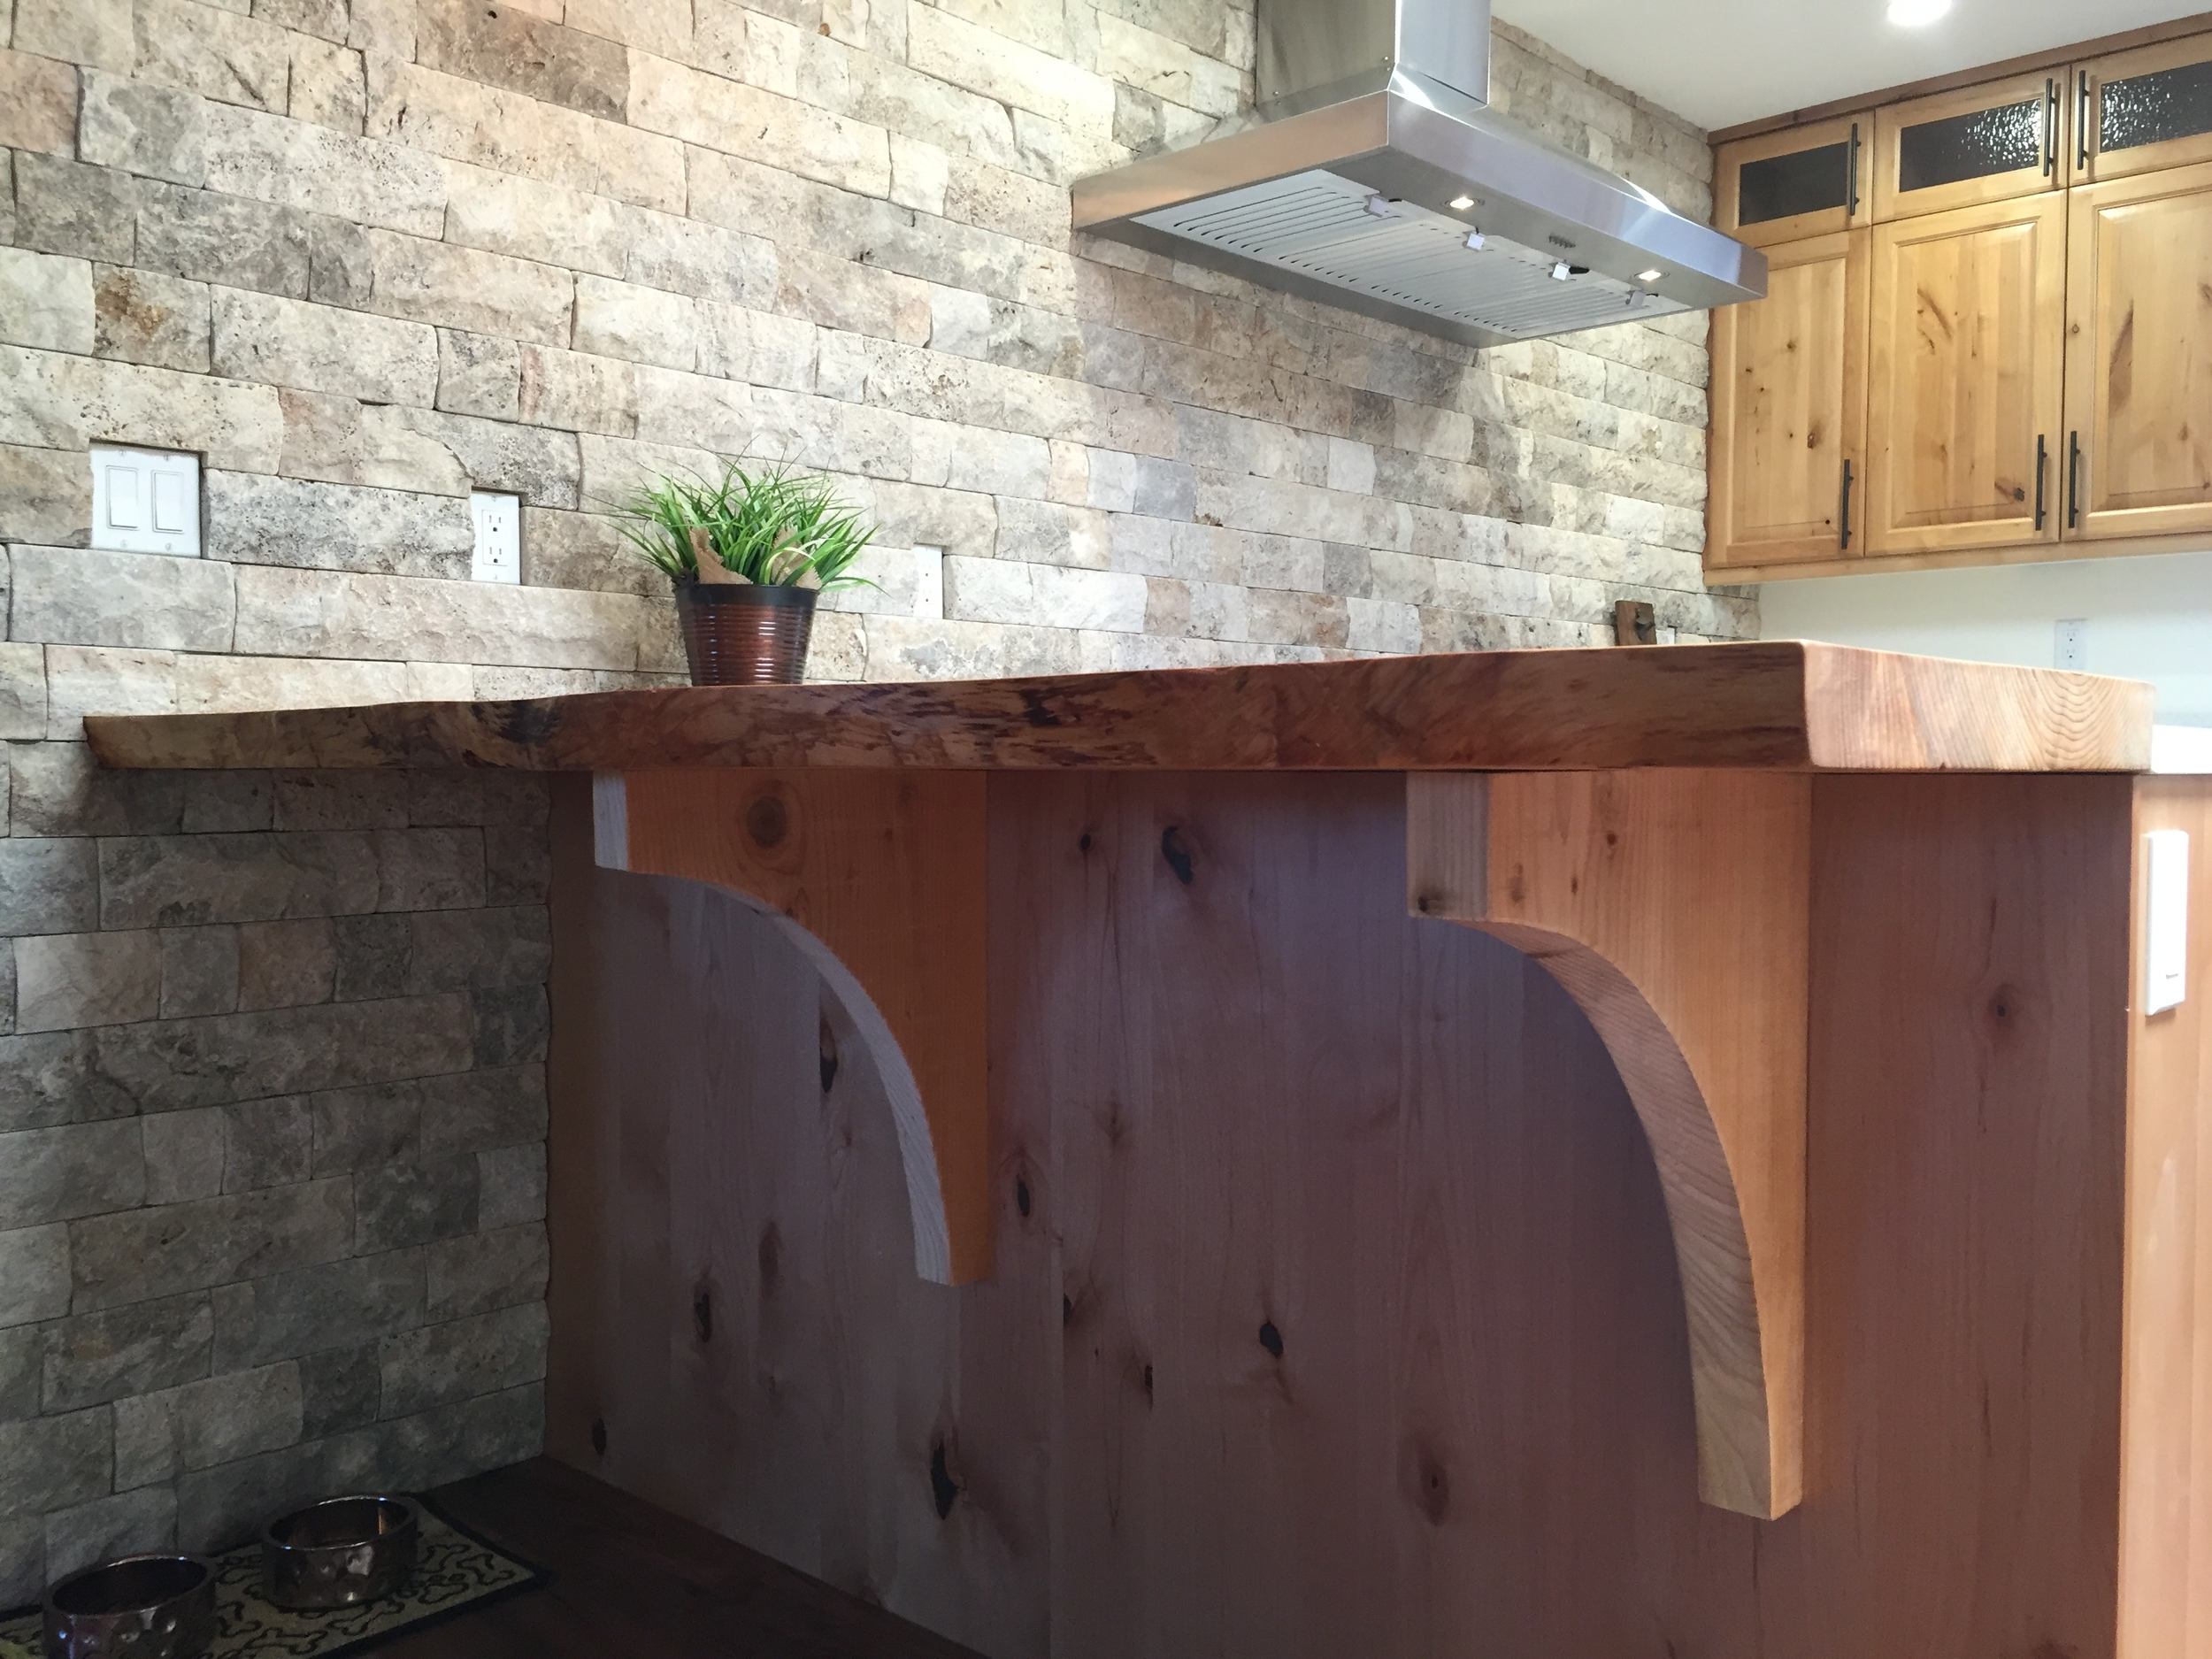 Live edge eating bar, hickory cabinets, rustic stone.